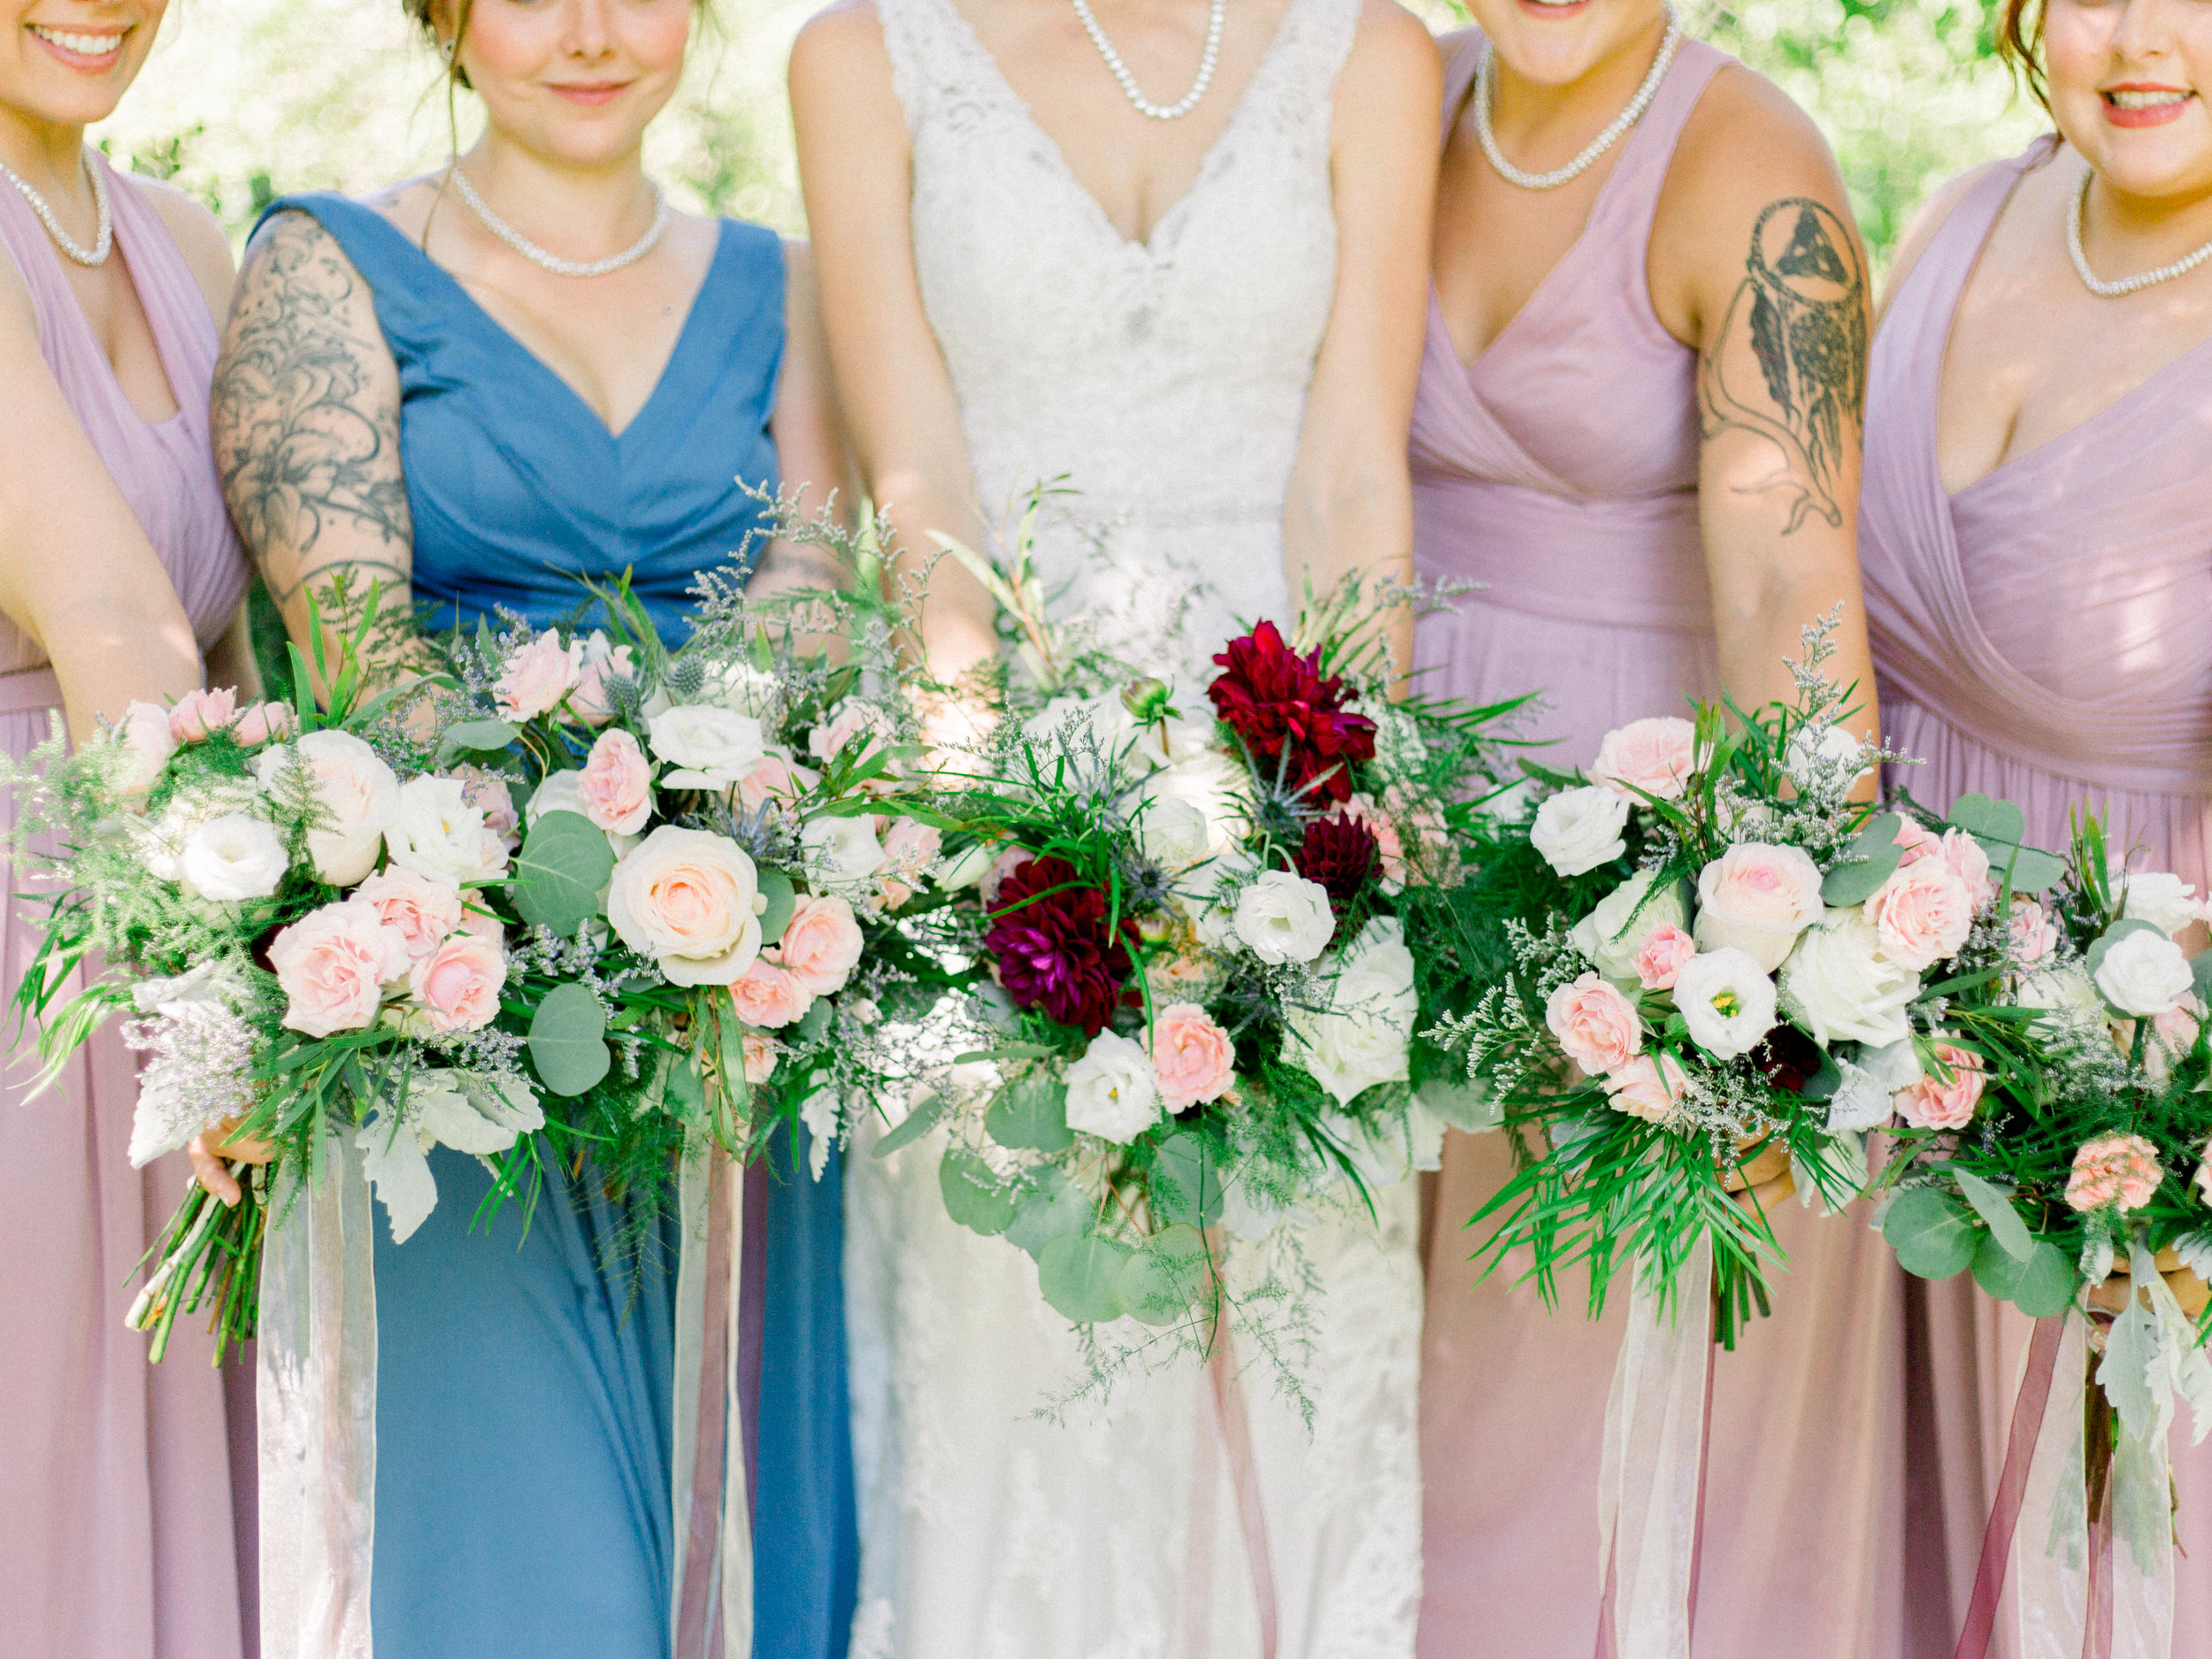 katie_graham_photography_wedding_photographer_ellicottville_new_york_brewing_company_kyle_cathryn